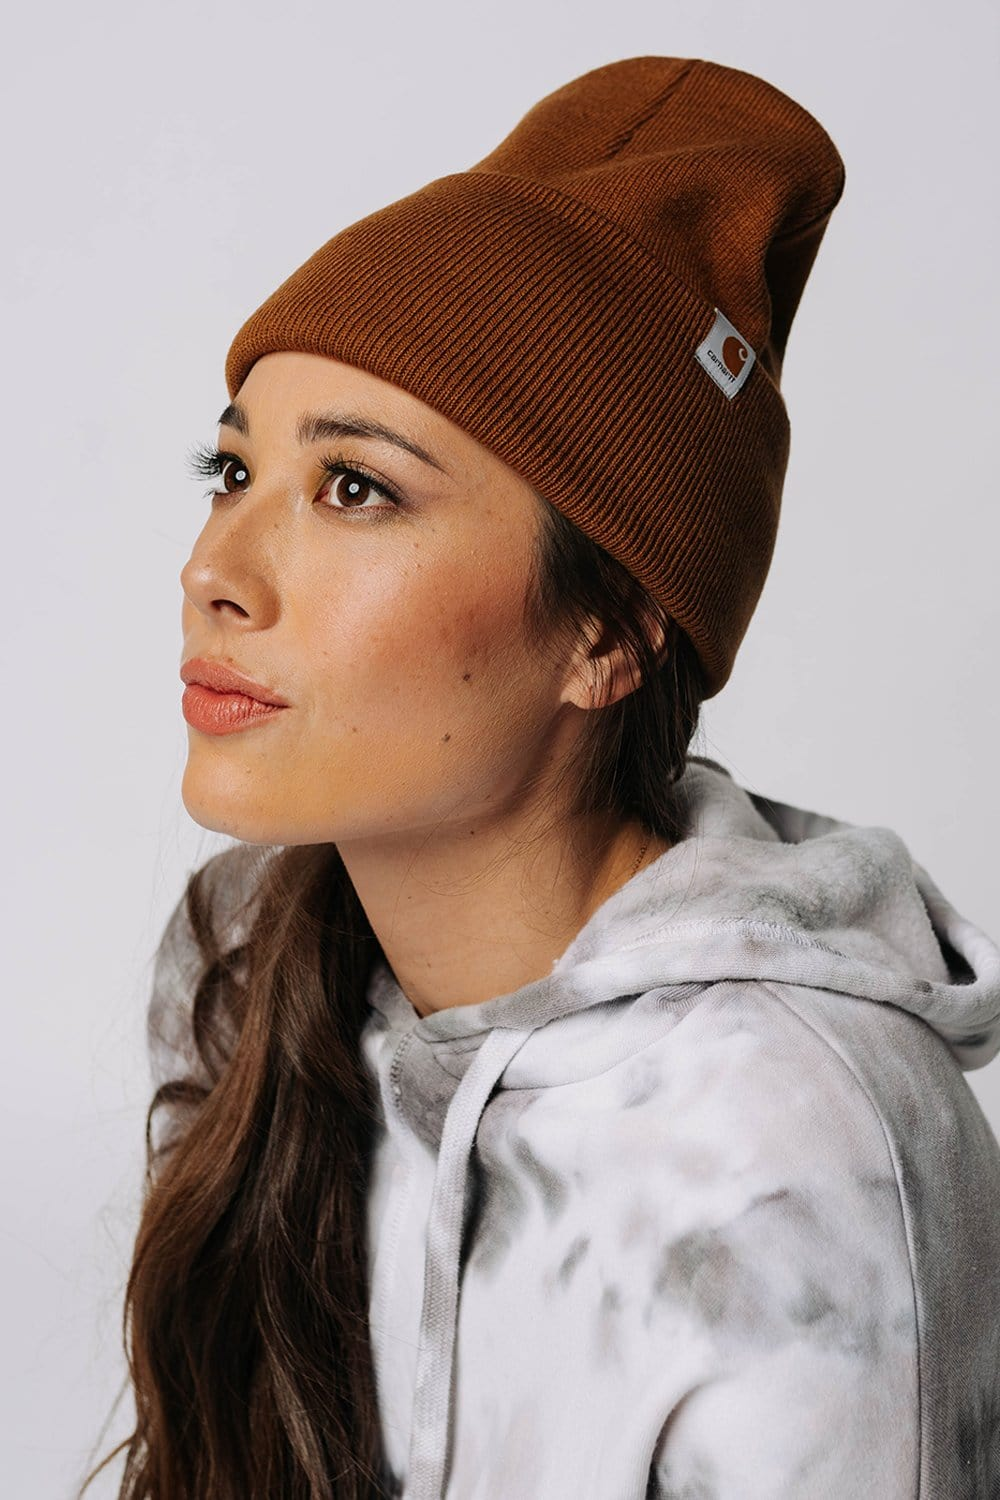 Clad and Cloth, Carhartt Beanie in Camel, Ocean & 7th, Accessory.